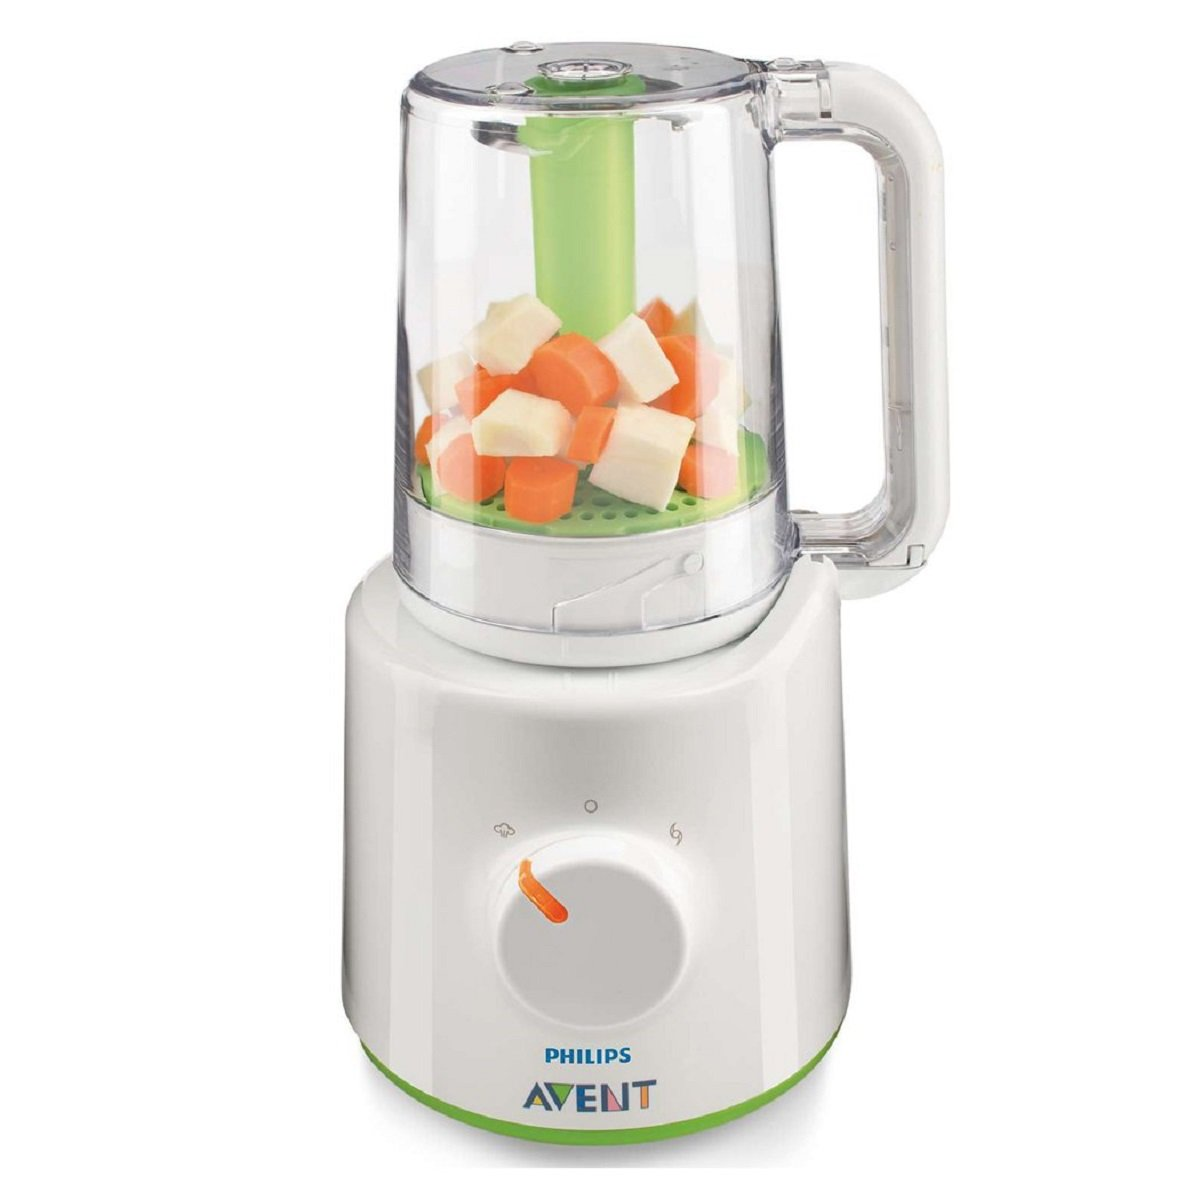 Philips AVENT SCF870/21 Combined Baby Food Steamer and Blender 220V Only